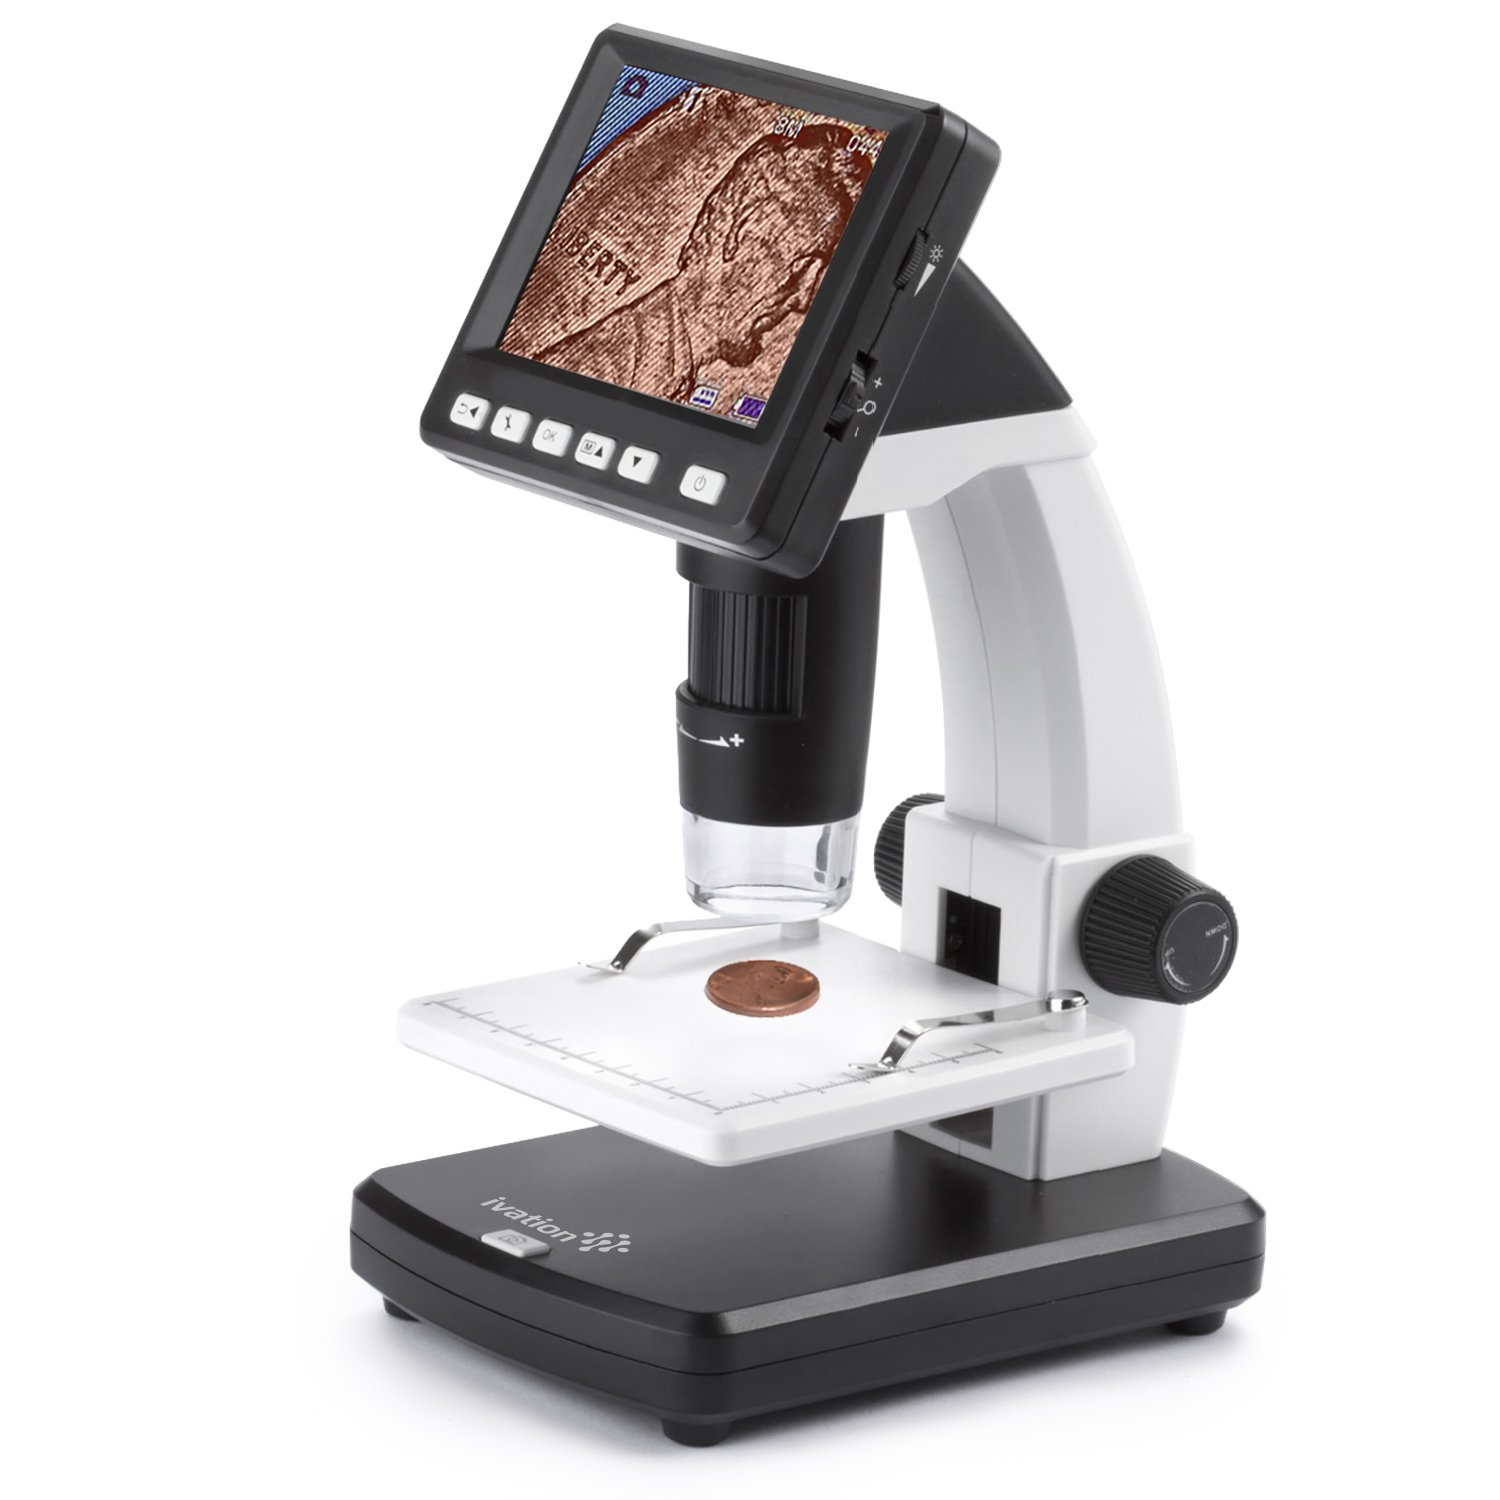 """Ivation Portable Digital HD LCD Microscope – Rechargeable 14MP Microscope w 220x Optical 500x Digital Magnification HD Sensor 3.5"""" LCD Screen Adjustable Stage Photo Video Capture HDMI More"""